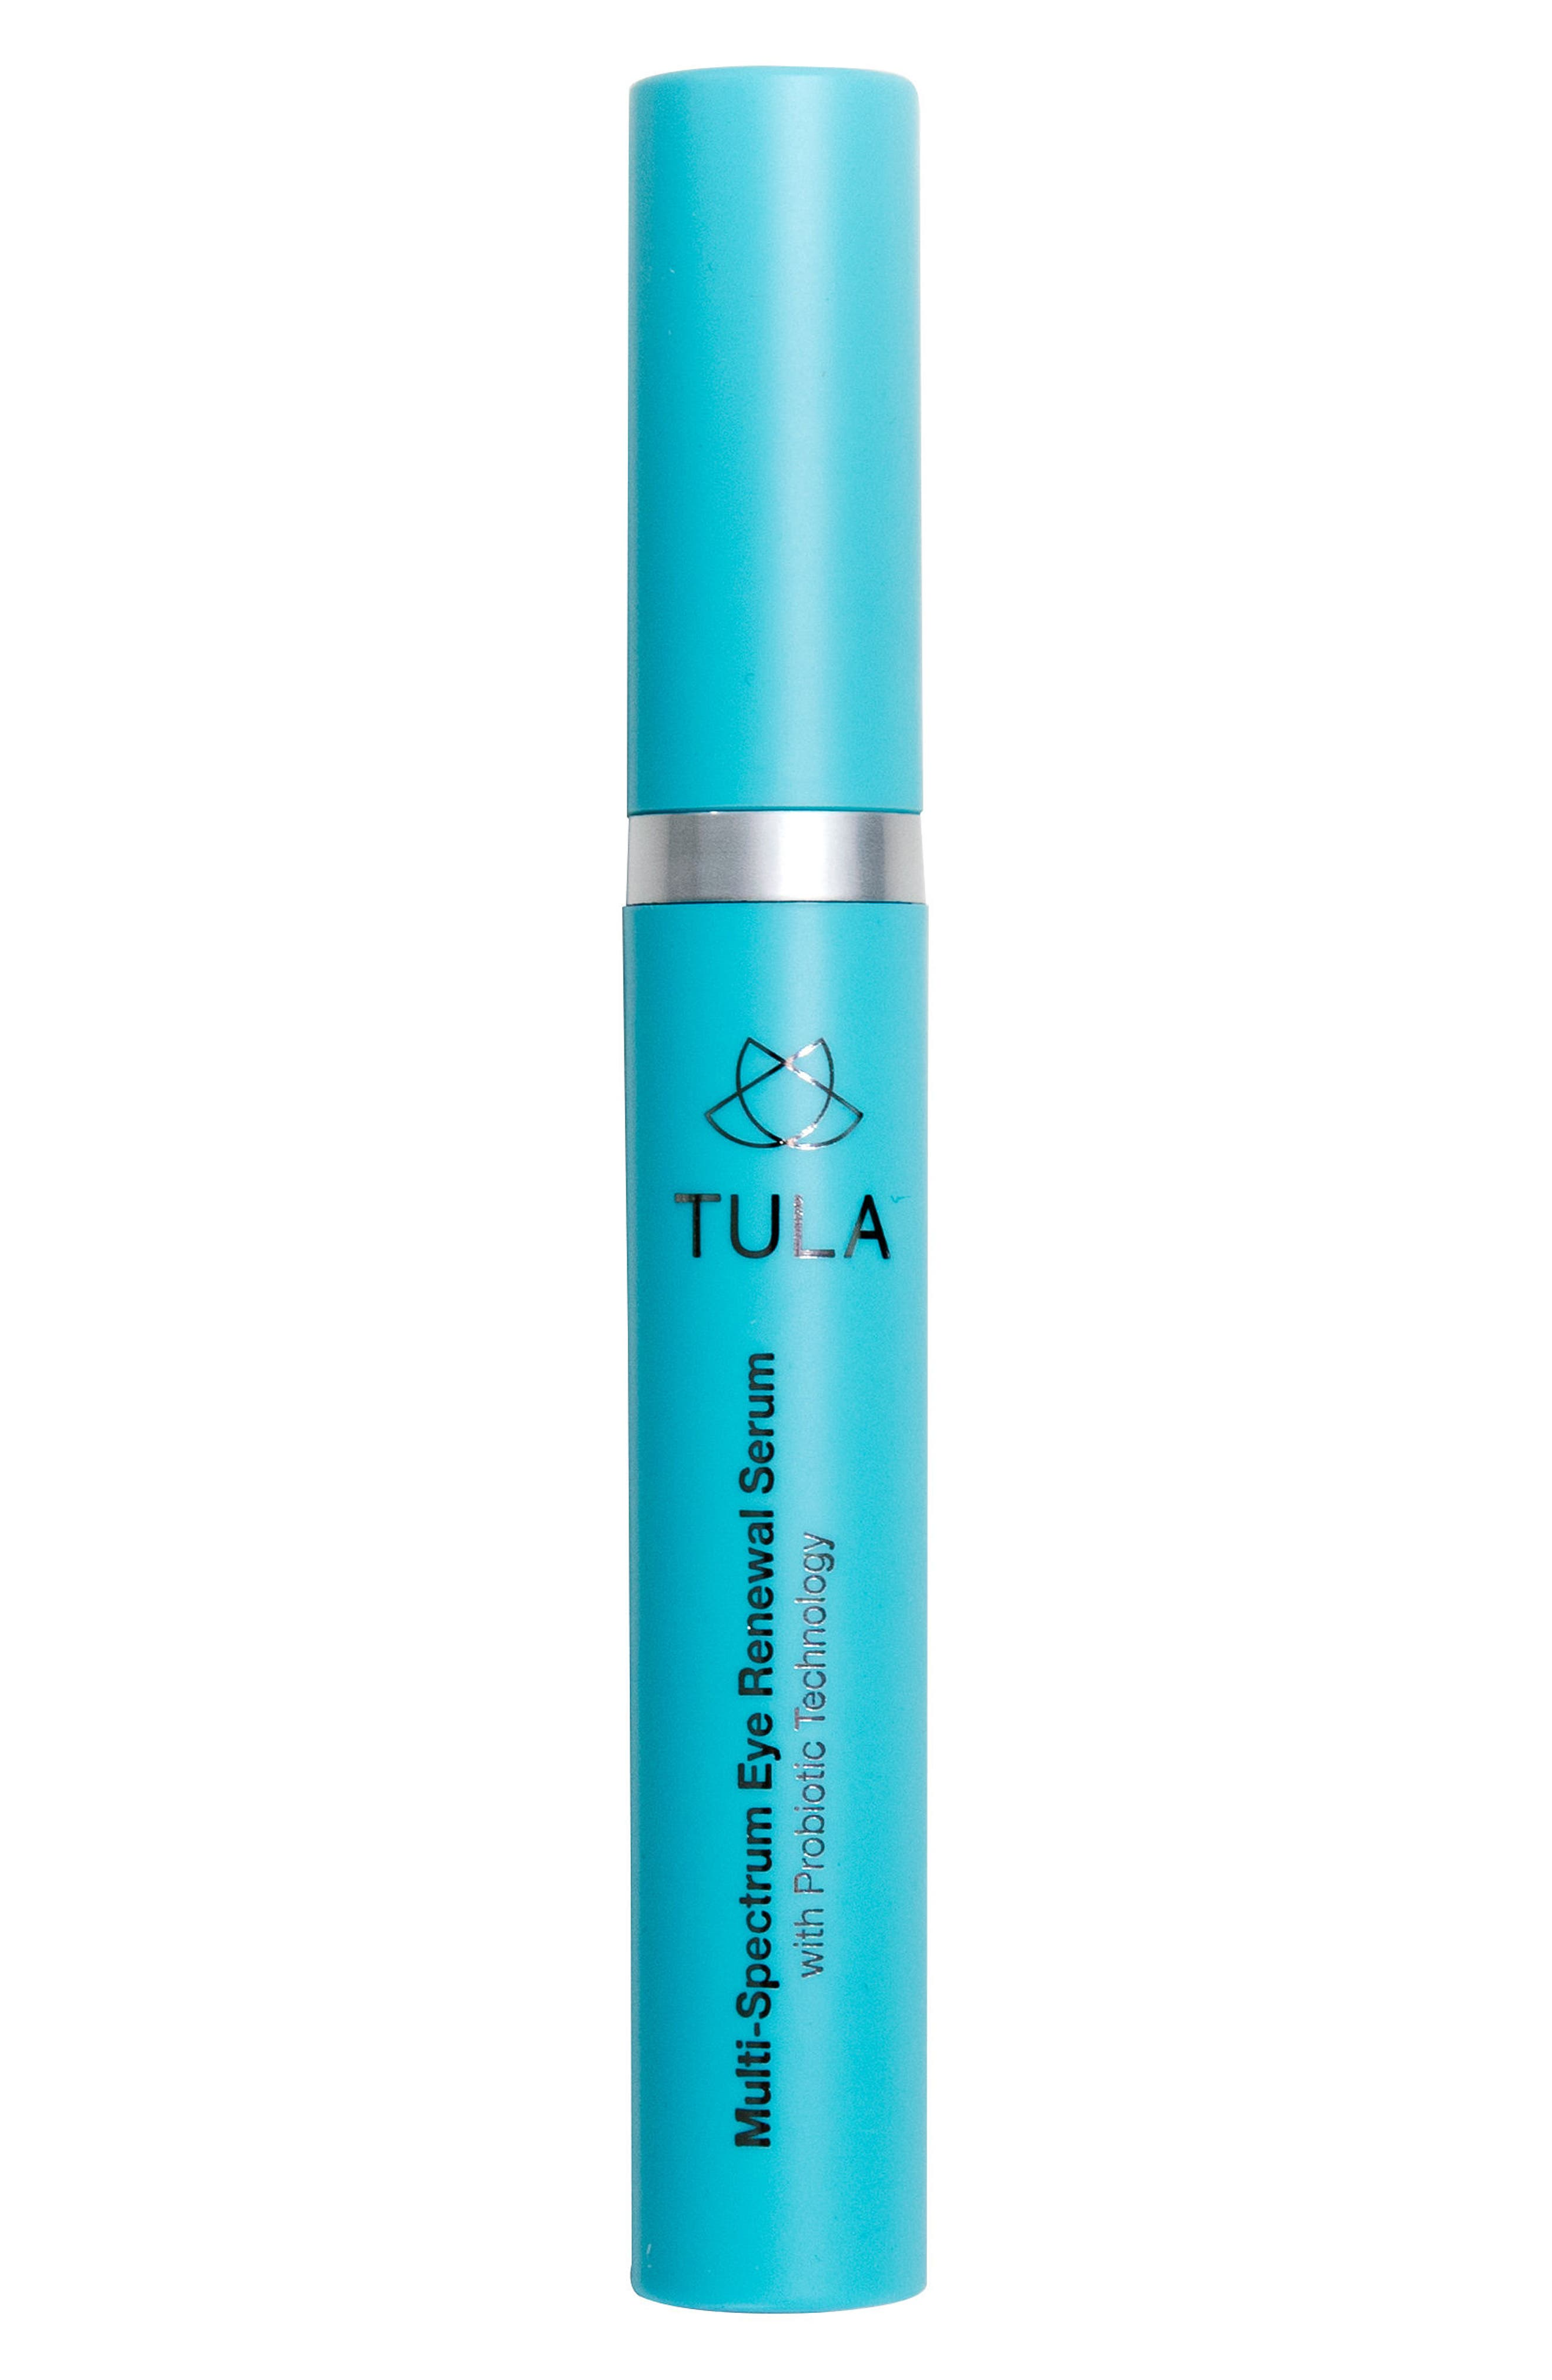 Multi-Spectrum Eye Renewal Serum,                         Main,                         color, No Color